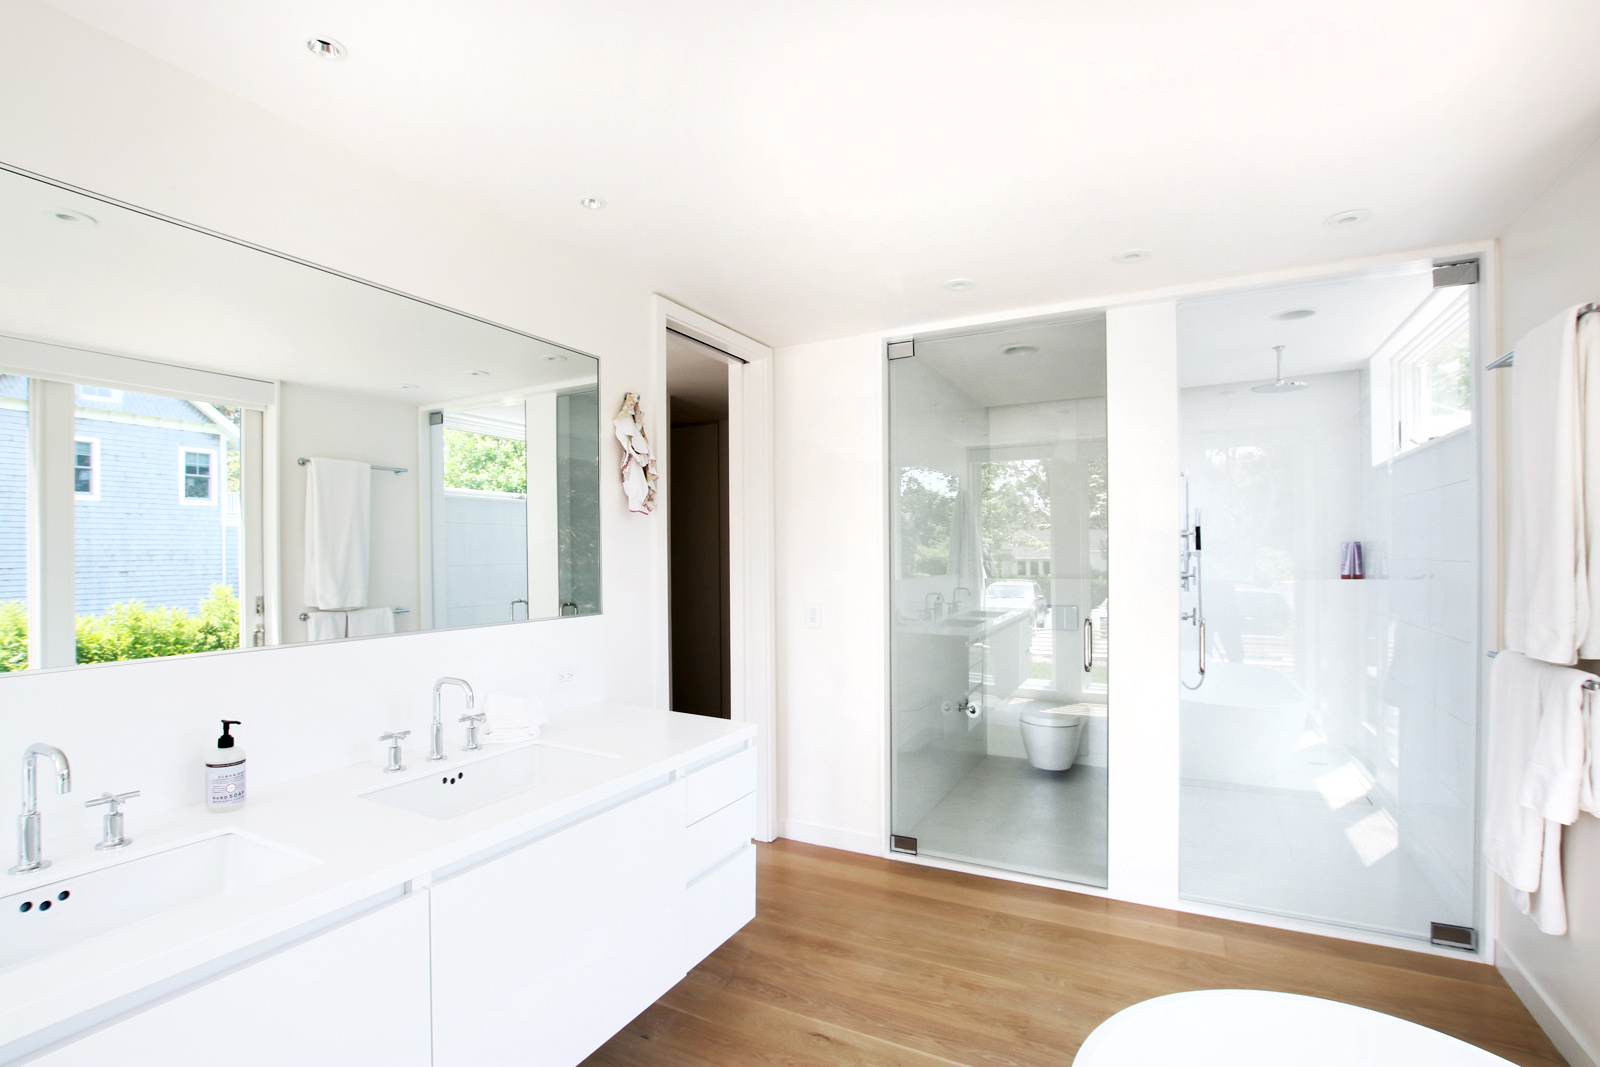 06_Bridgehampton House-master-bathroom.jpg